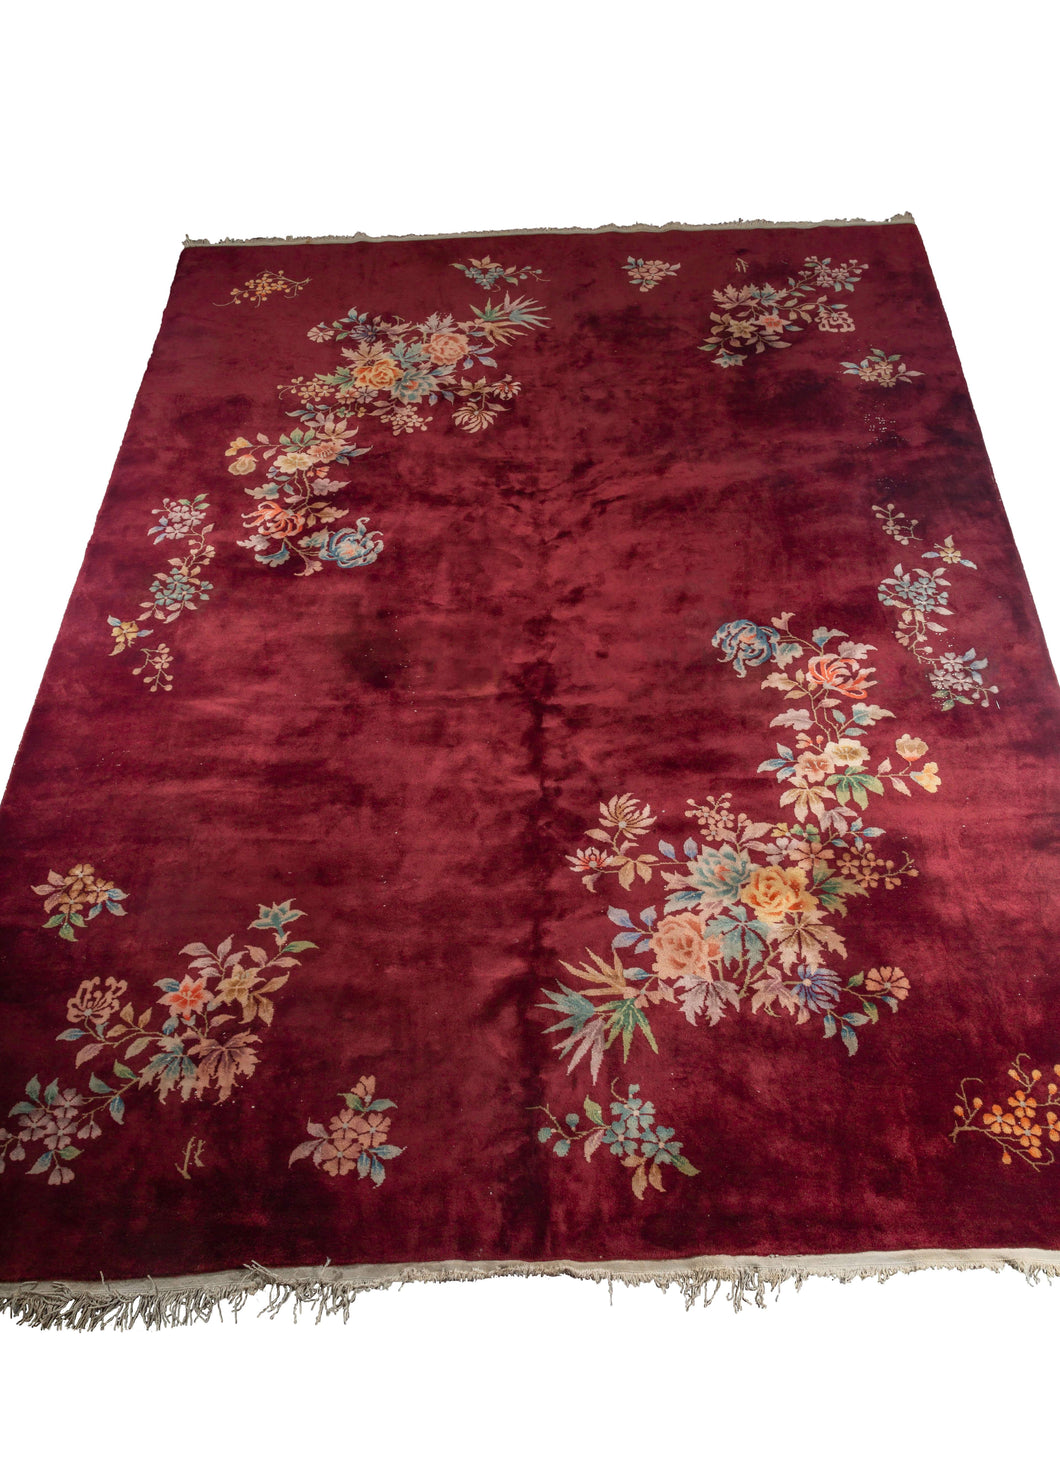 Burgundy Chinese Deco rug with colorful flowers